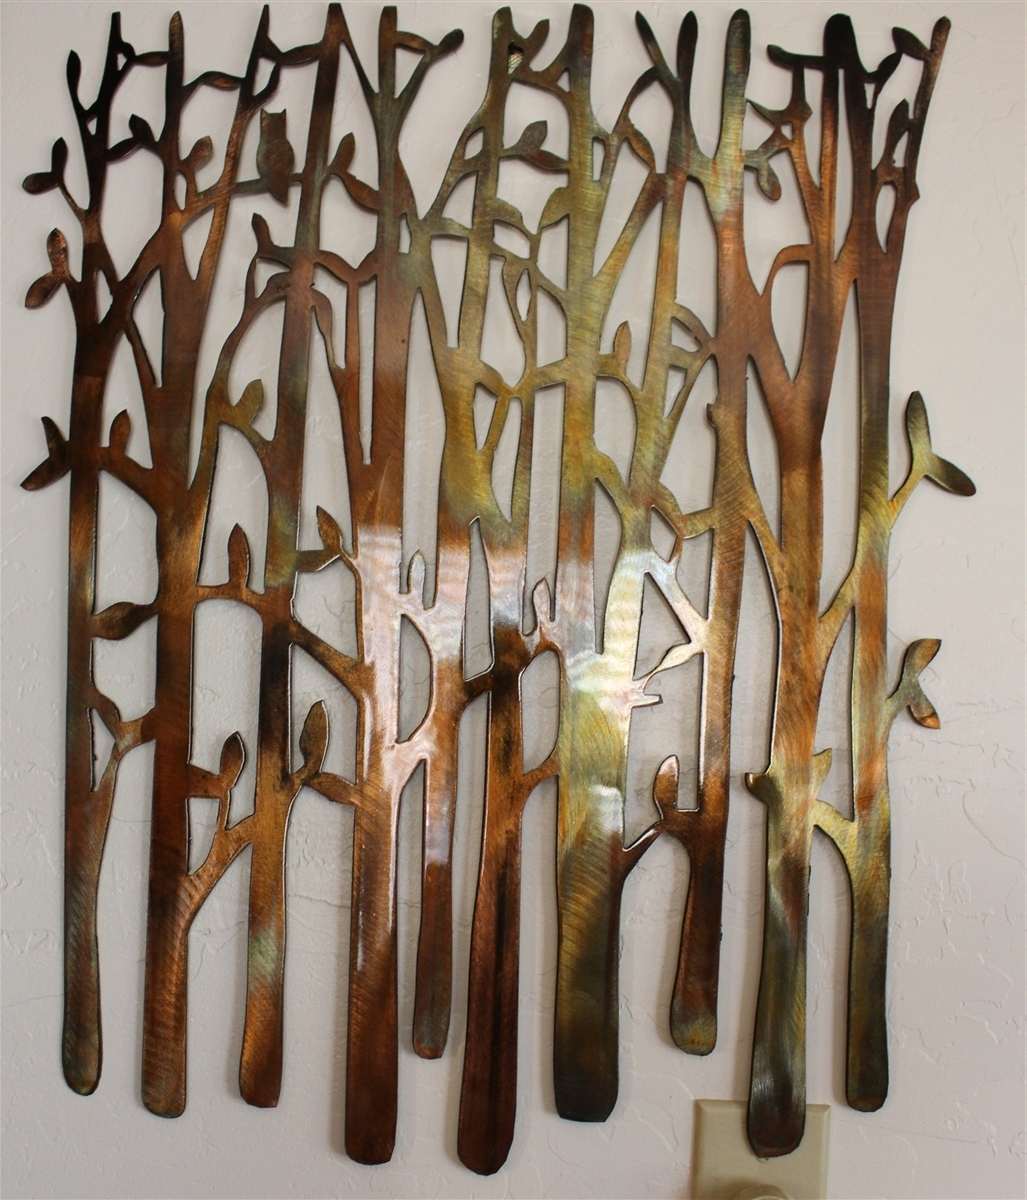 Trendy Birch Tree, Birch Tree Metal Art, Bamboo, Bird In The Trees, Bird On Pertaining To Bamboo Wall Art (View 19 of 20)